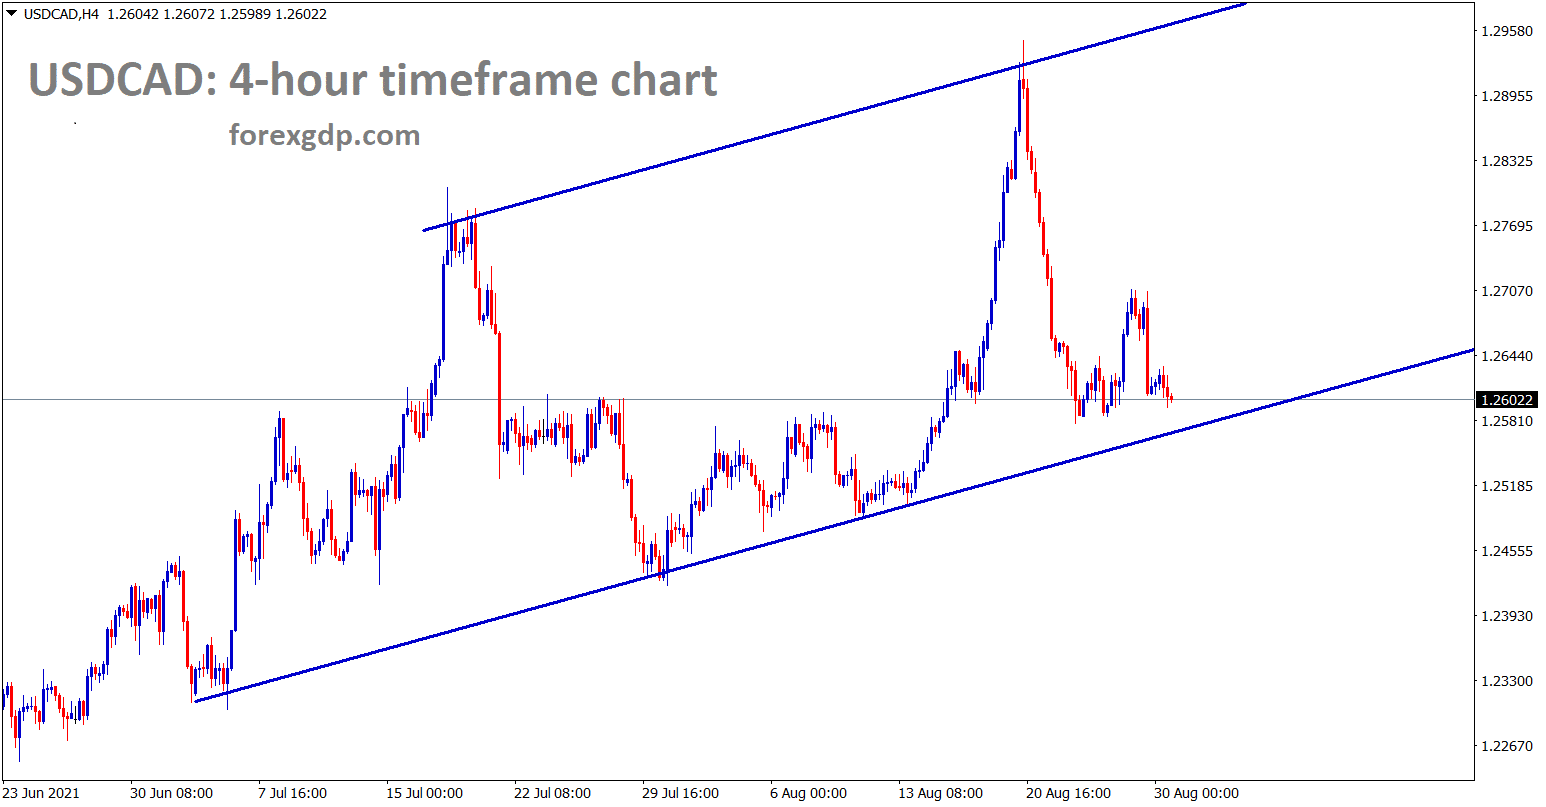 USDCAD is going to reach the higher low of uptrend line in the h4 chart